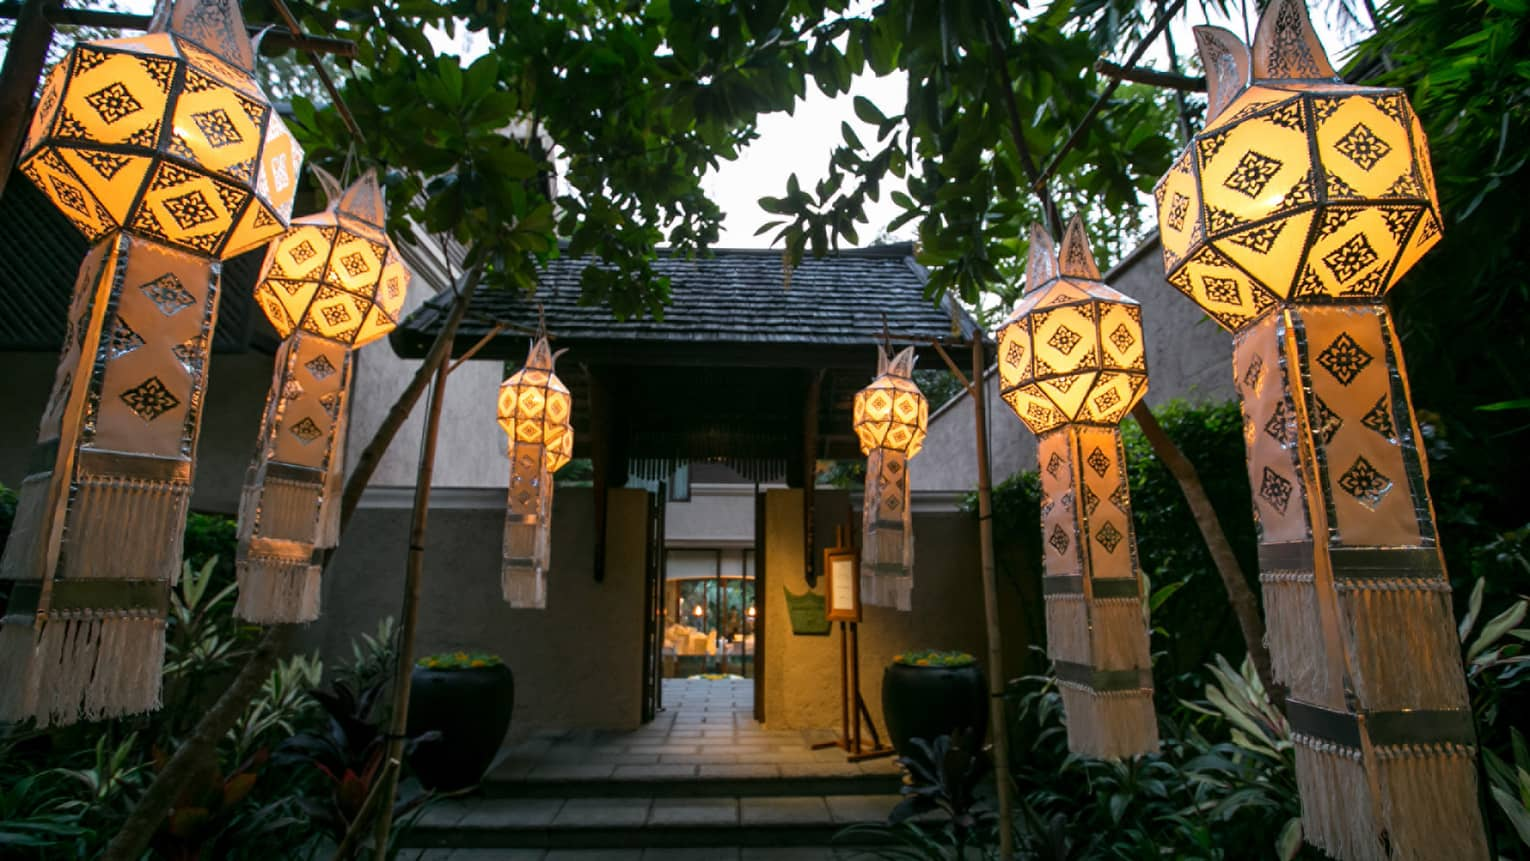 Long glowing Thai lanterns with fringes hang from trees along pavilion walkway